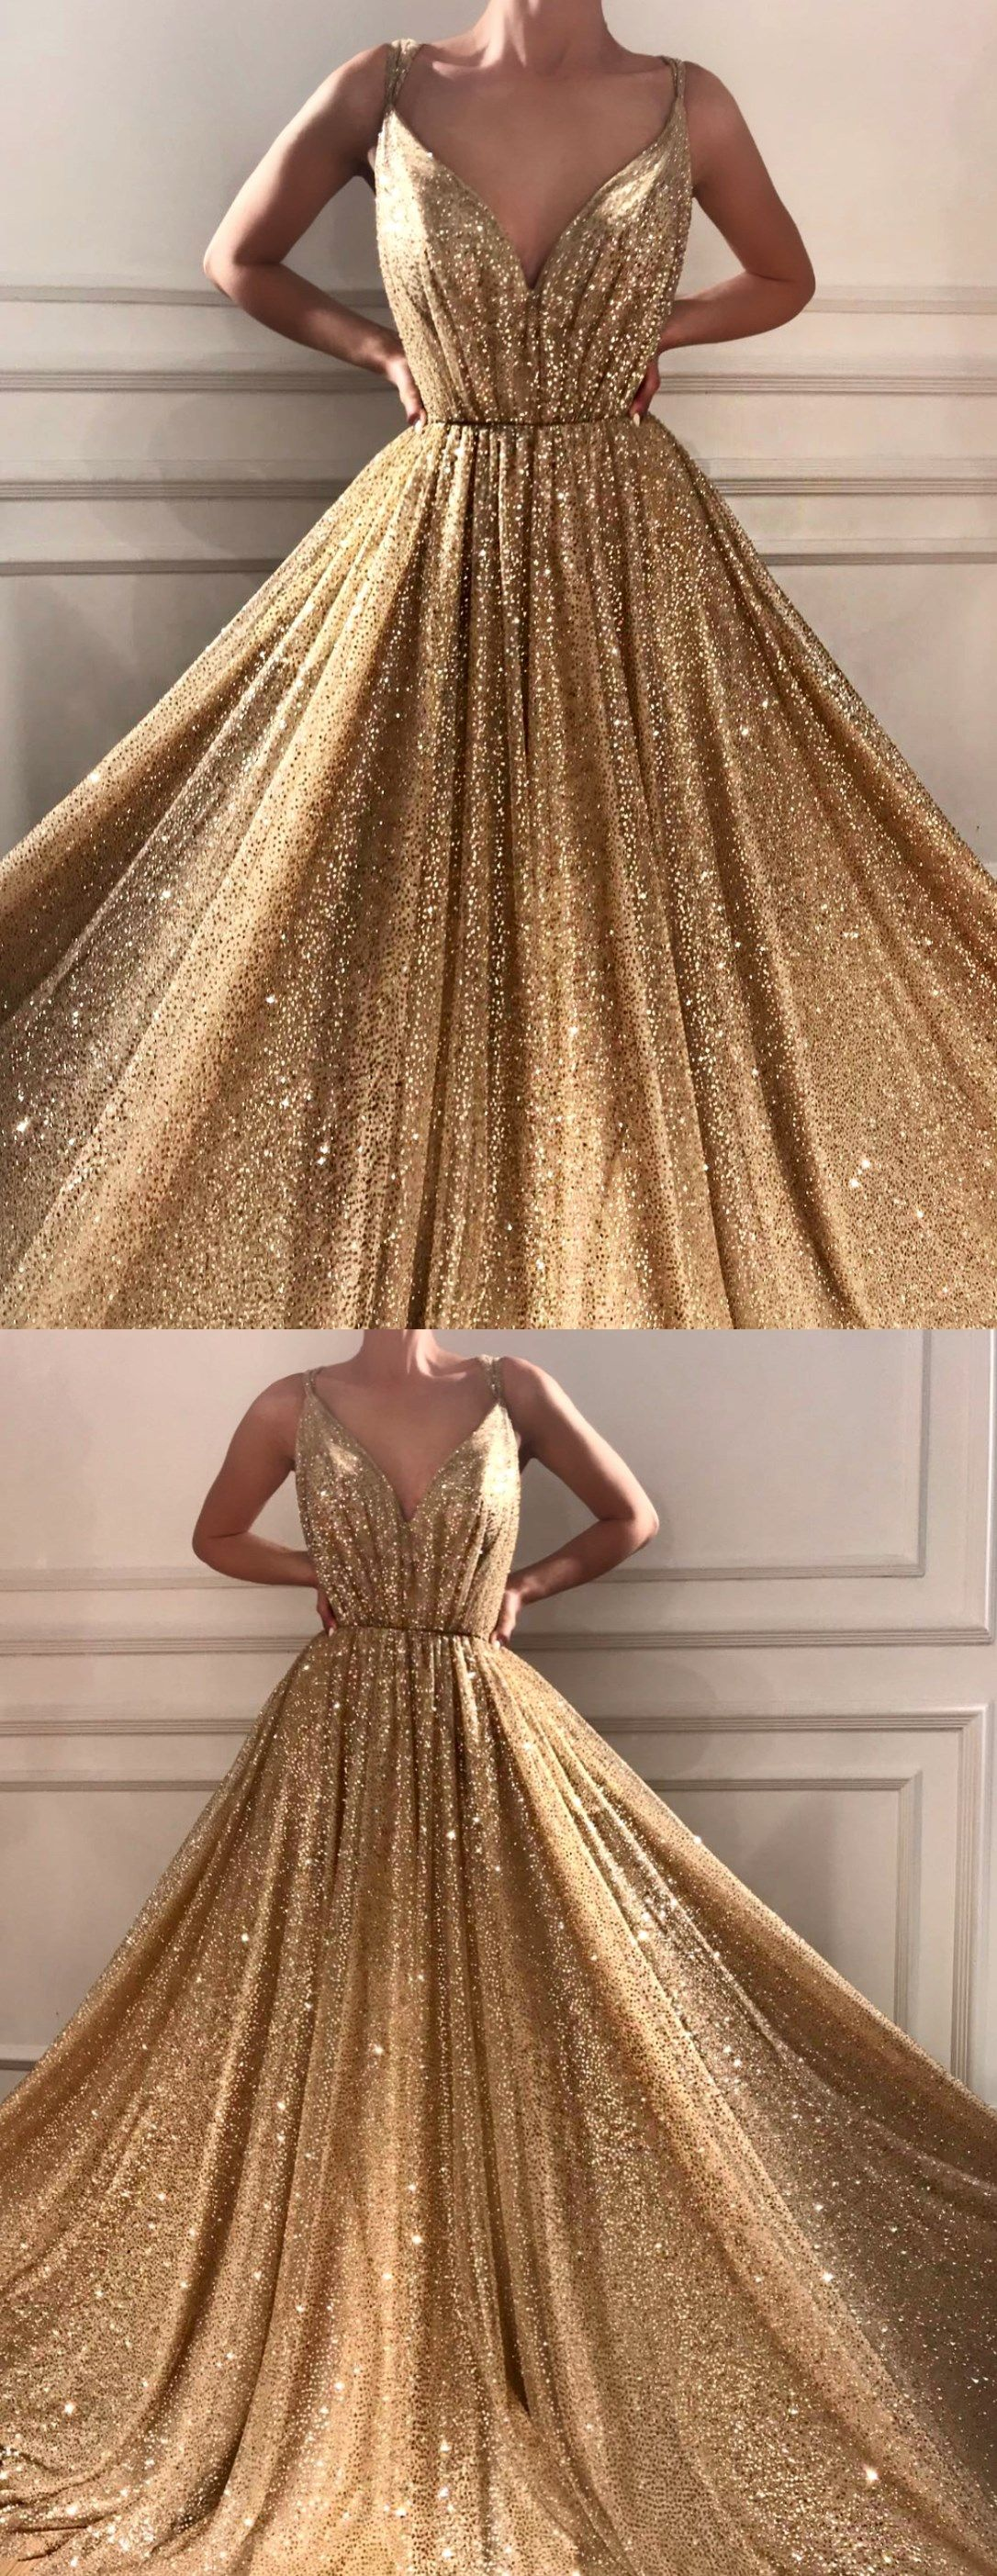 Sparkly prom dresses spaghetti straps aline gold bling long sexy